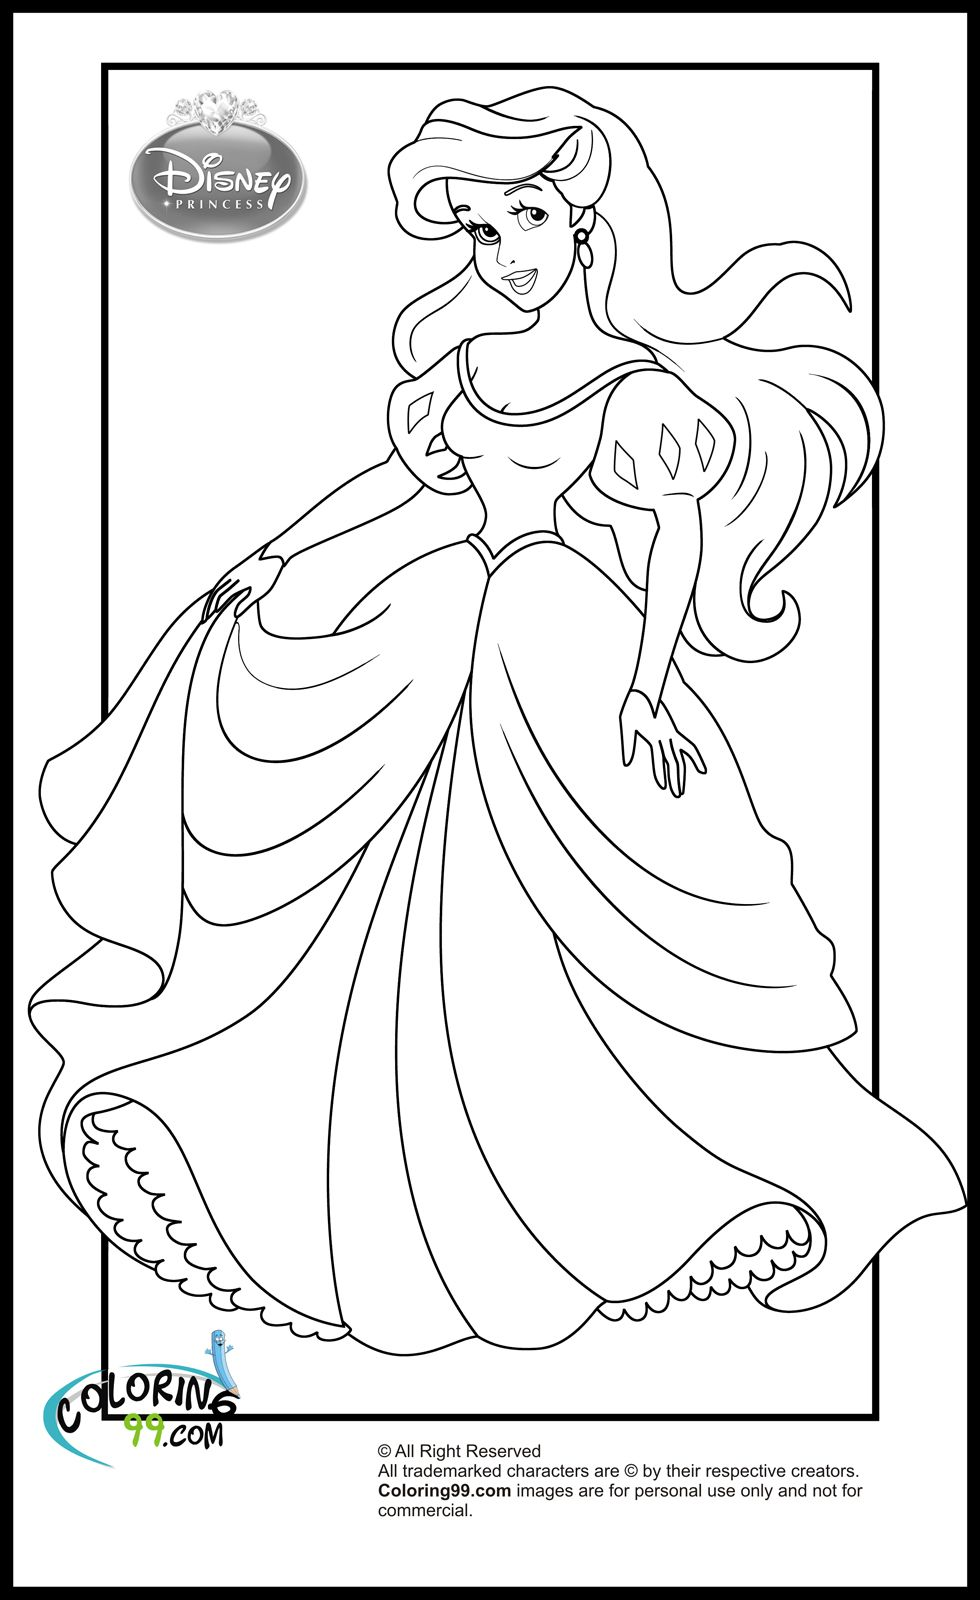 disney-princess-ariel-coloring-pages.jpg 980×1,600 pixels ...